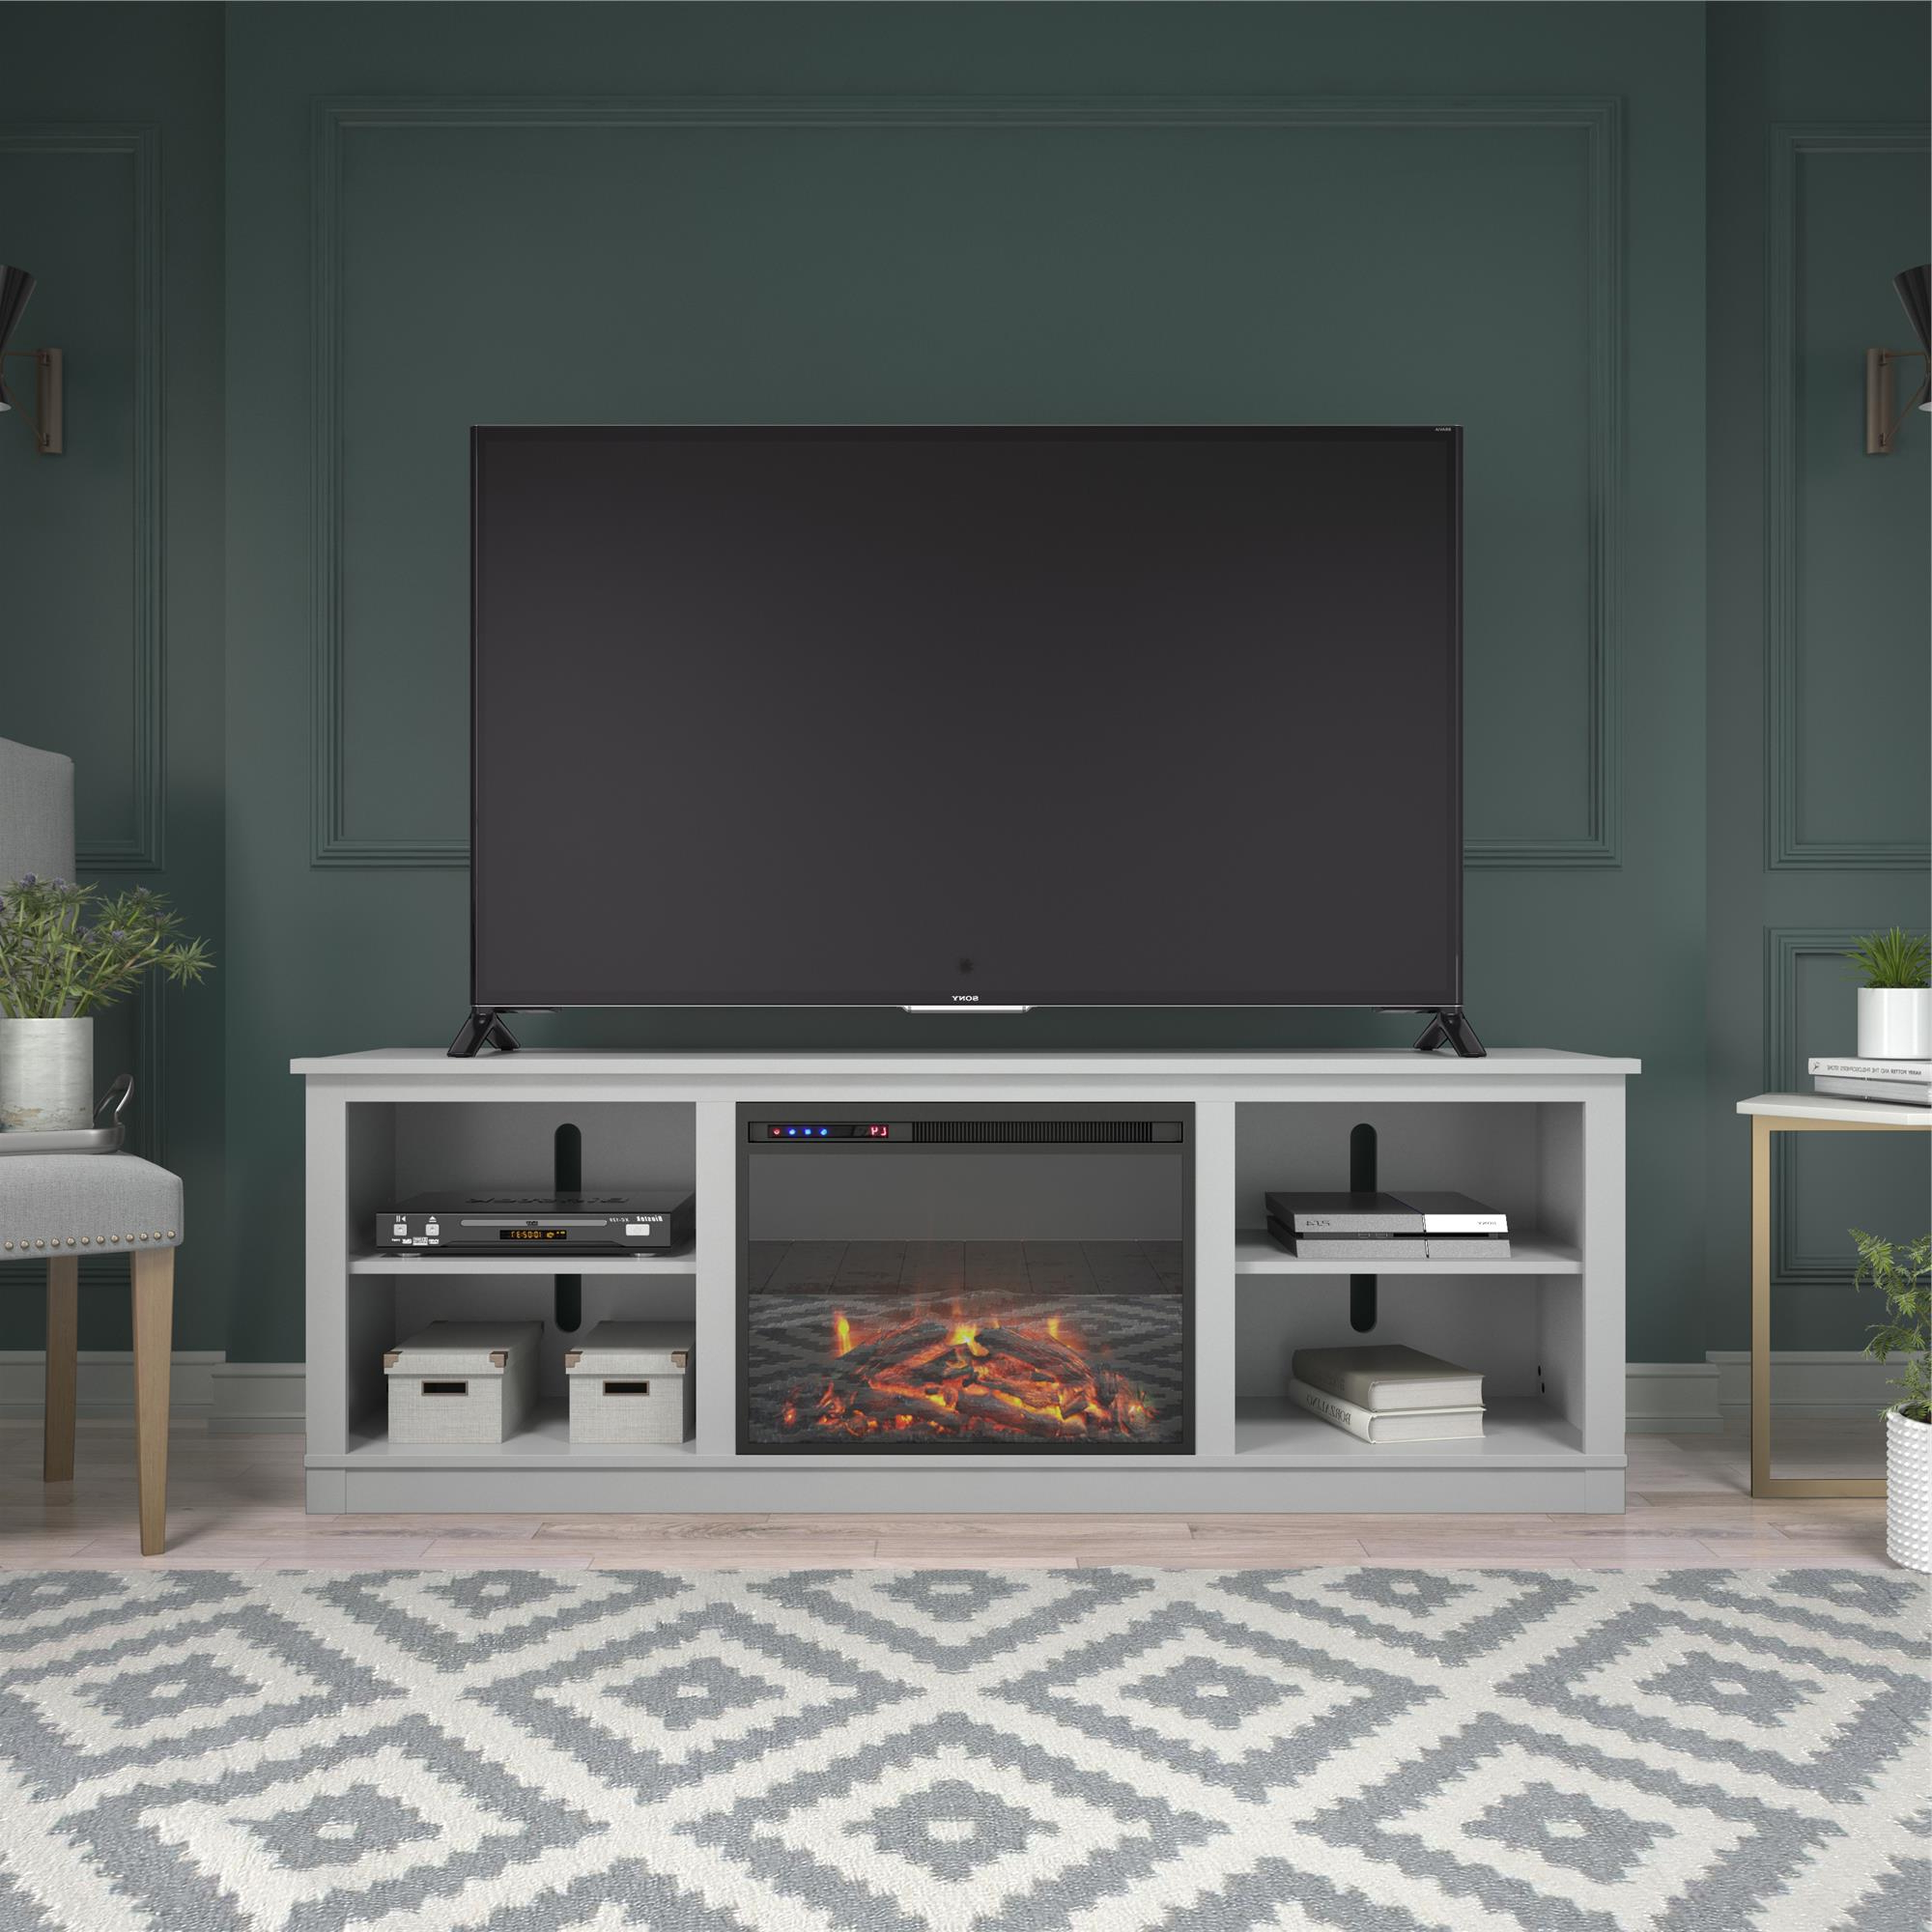 """Ameriwood Home Kahle Fireplace Tv Stand For Tvs Up To 75 With Regard To Well Known Mainor Tv Stands For Tvs Up To 70"""" (View 2 of 25)"""